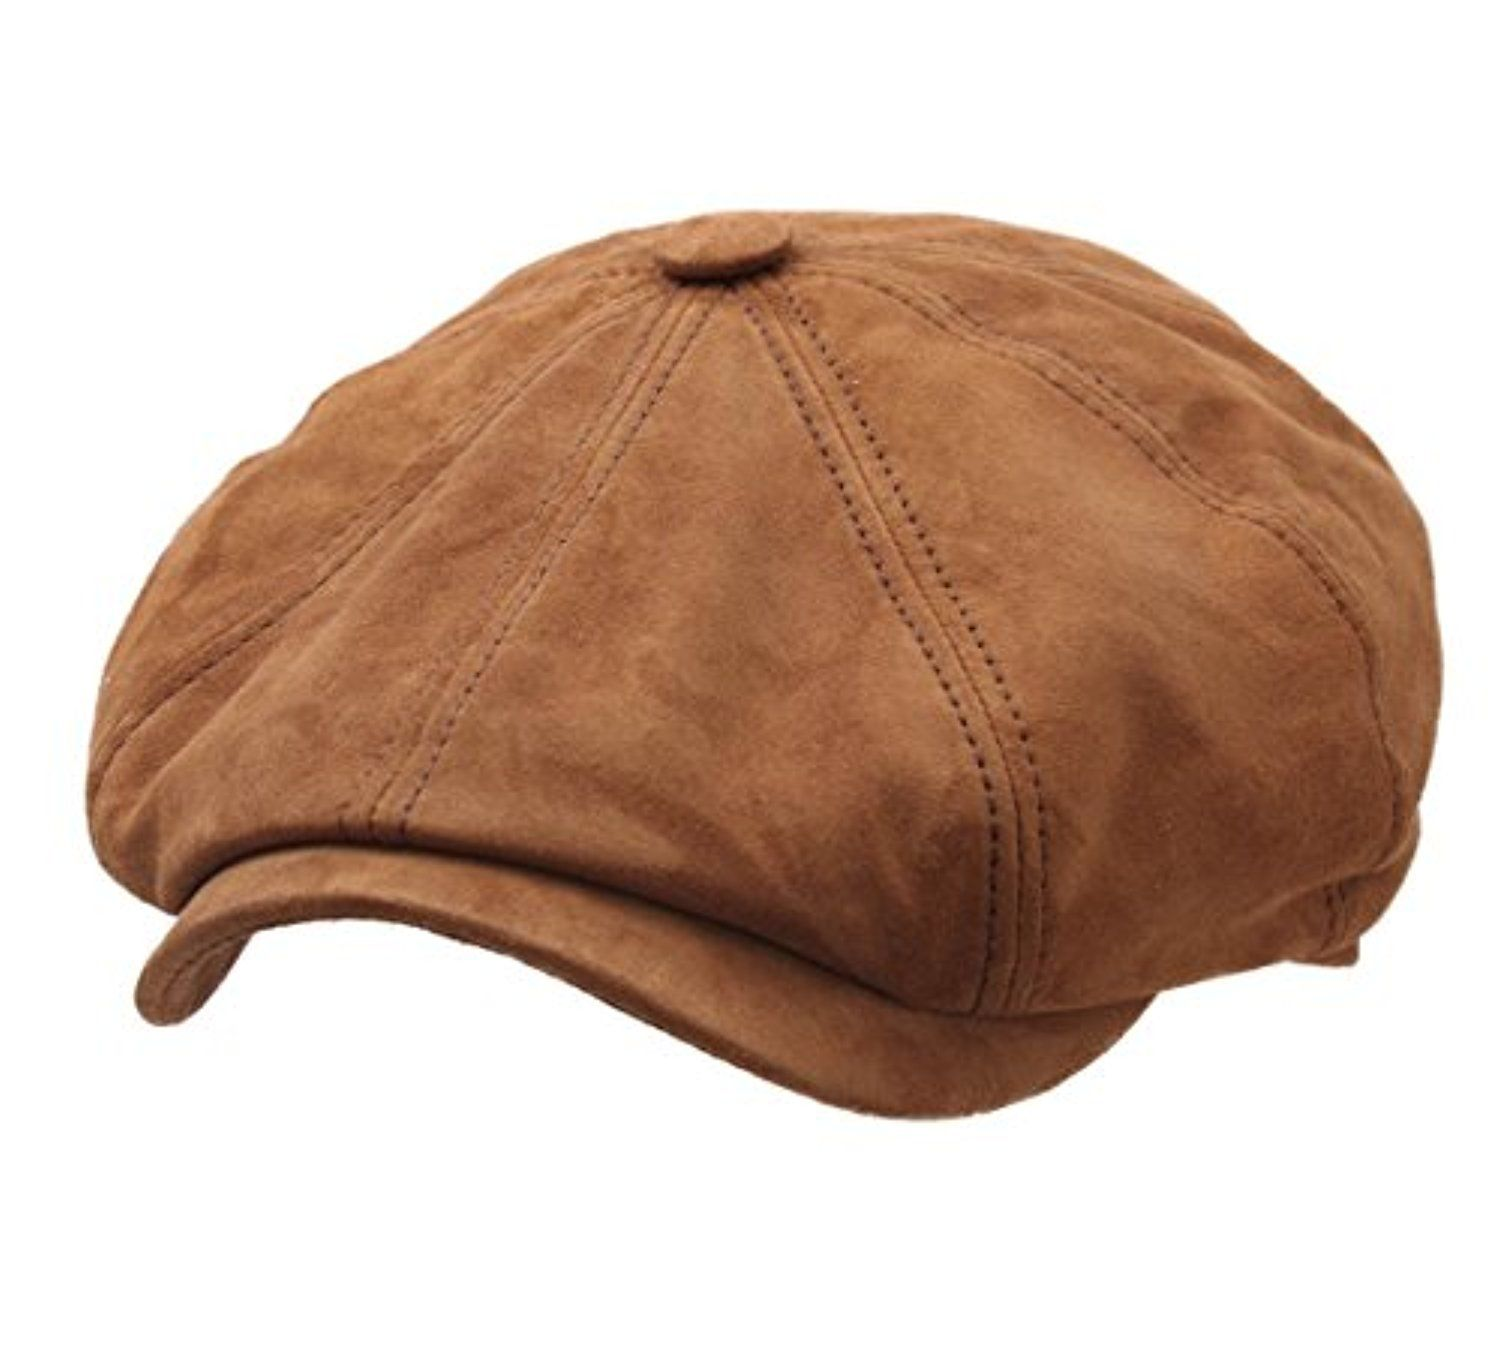 68e6f546 Stetson Men's Hatteras Goat Suede Leather Flat Cap -- Awesome products  selected by Anna Churchill